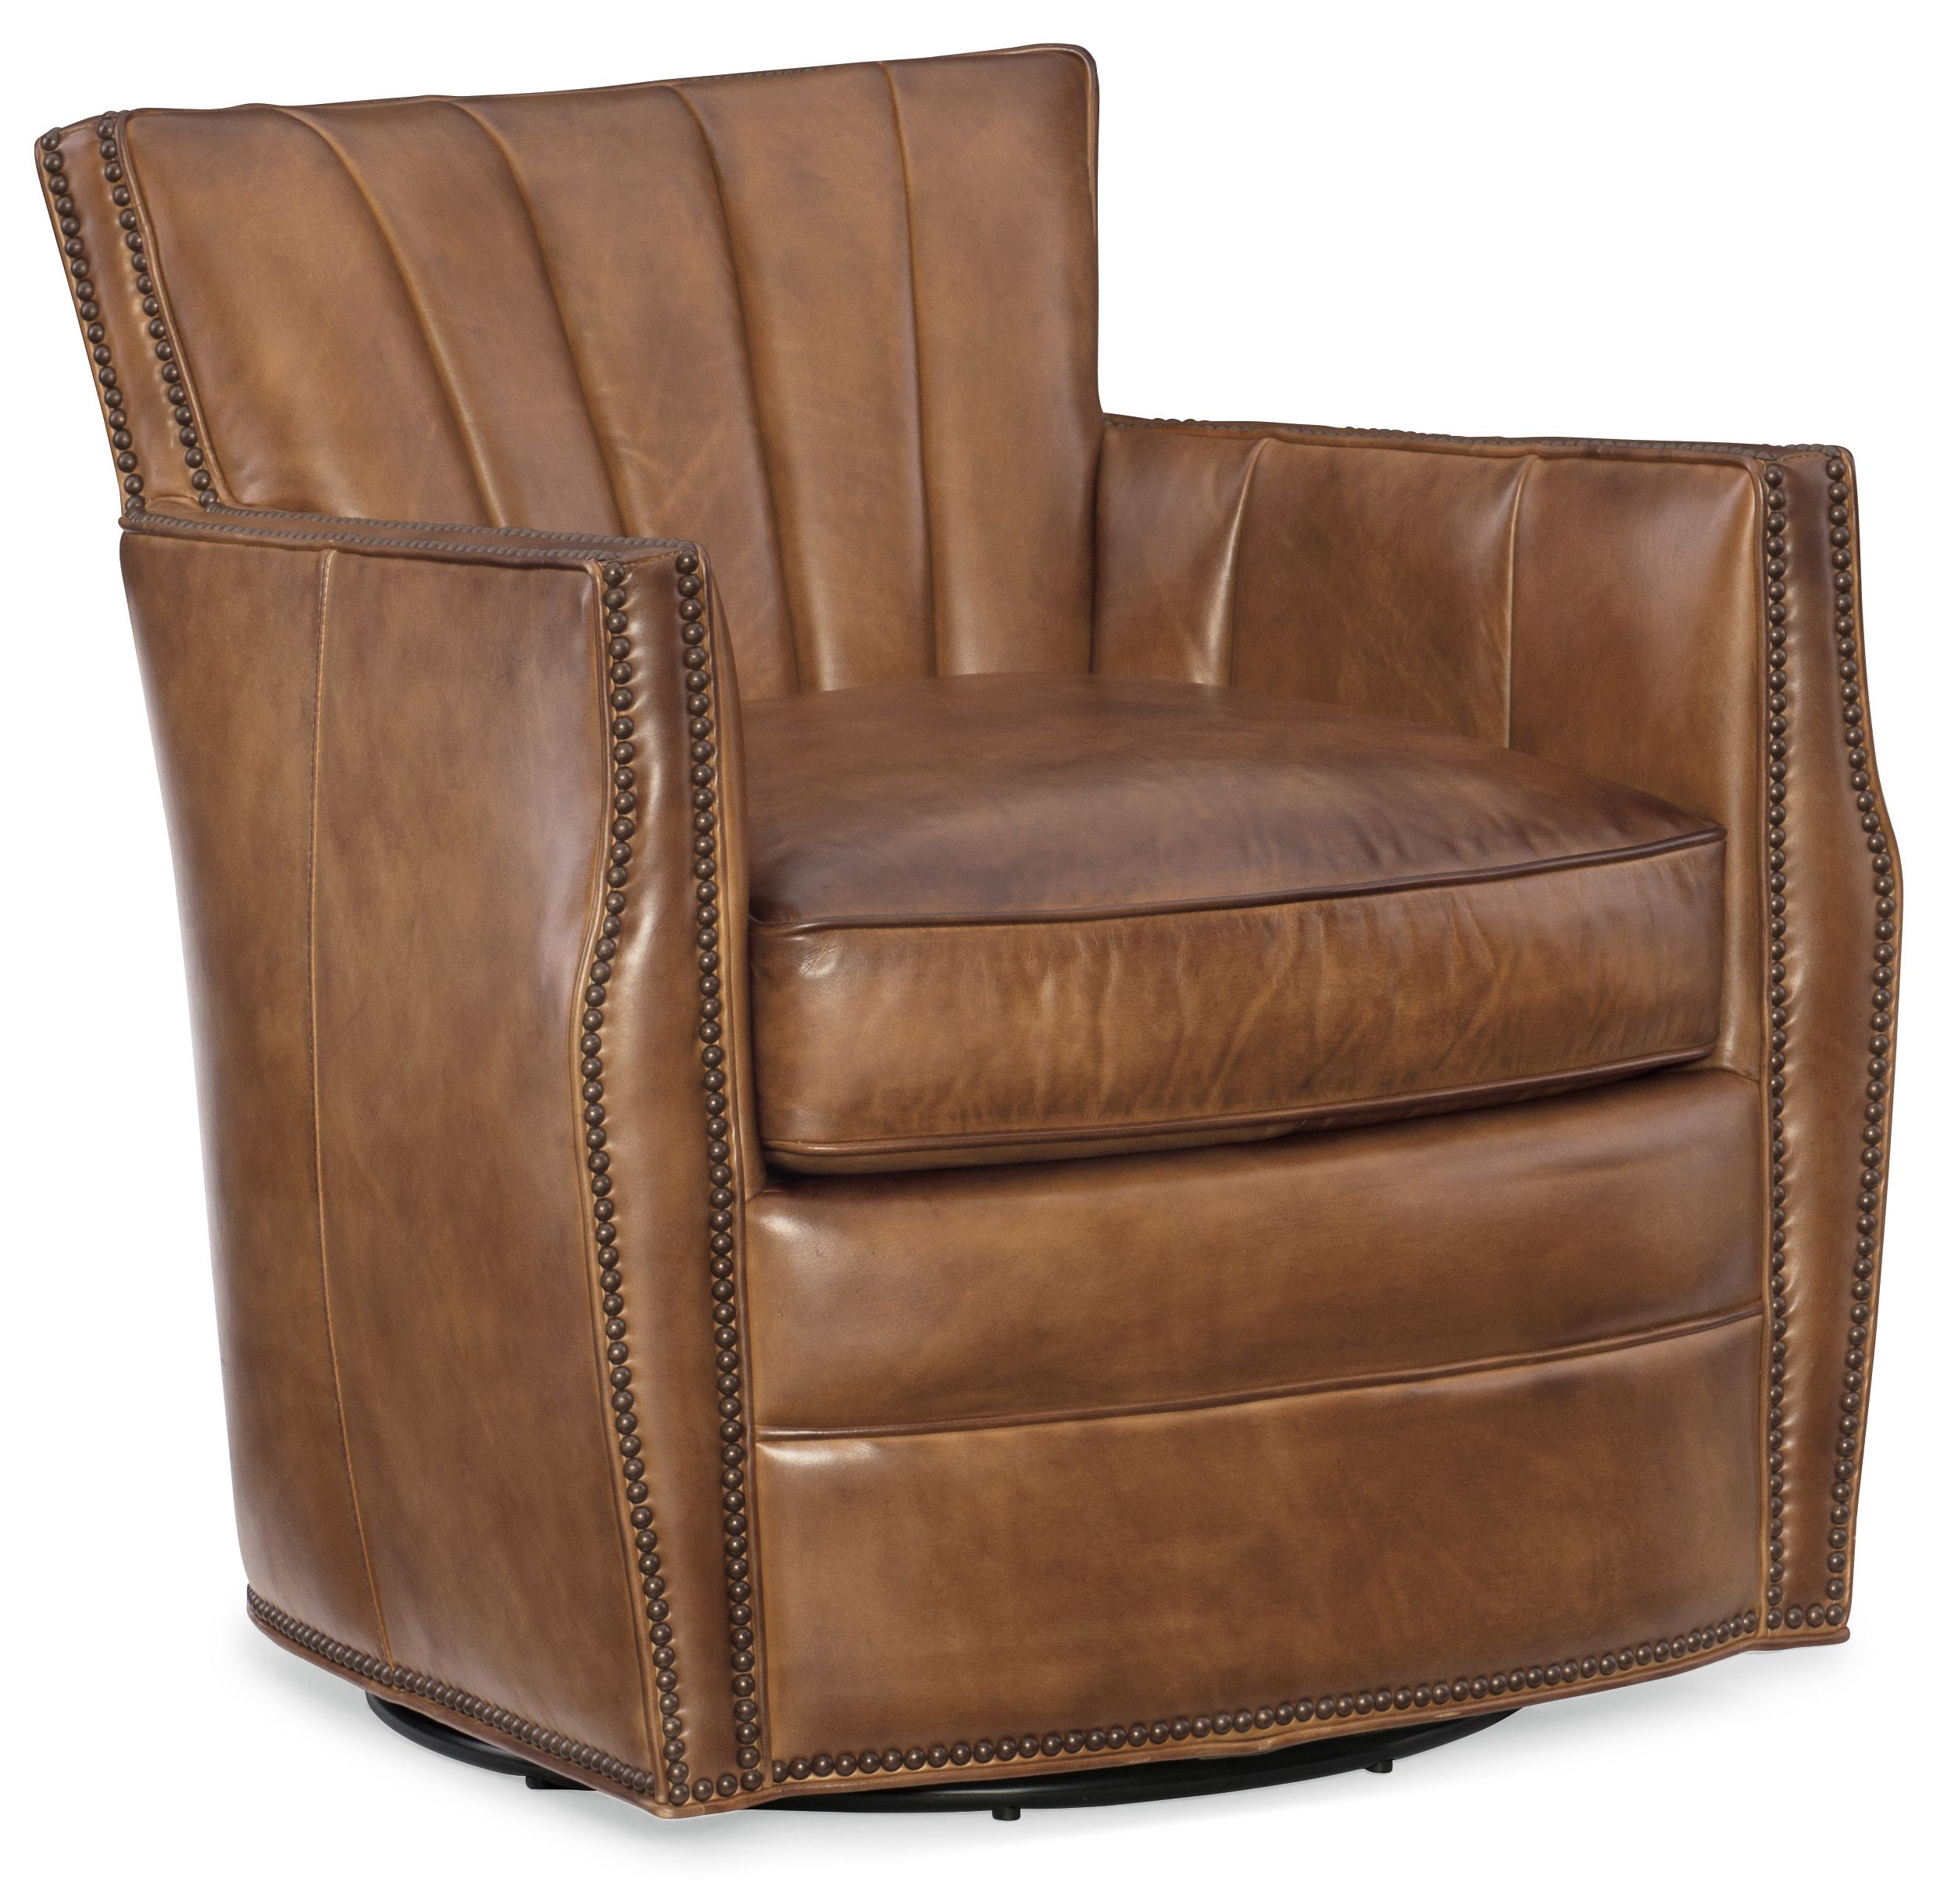 Brown leather swivel accent chair available at mooradians furniture